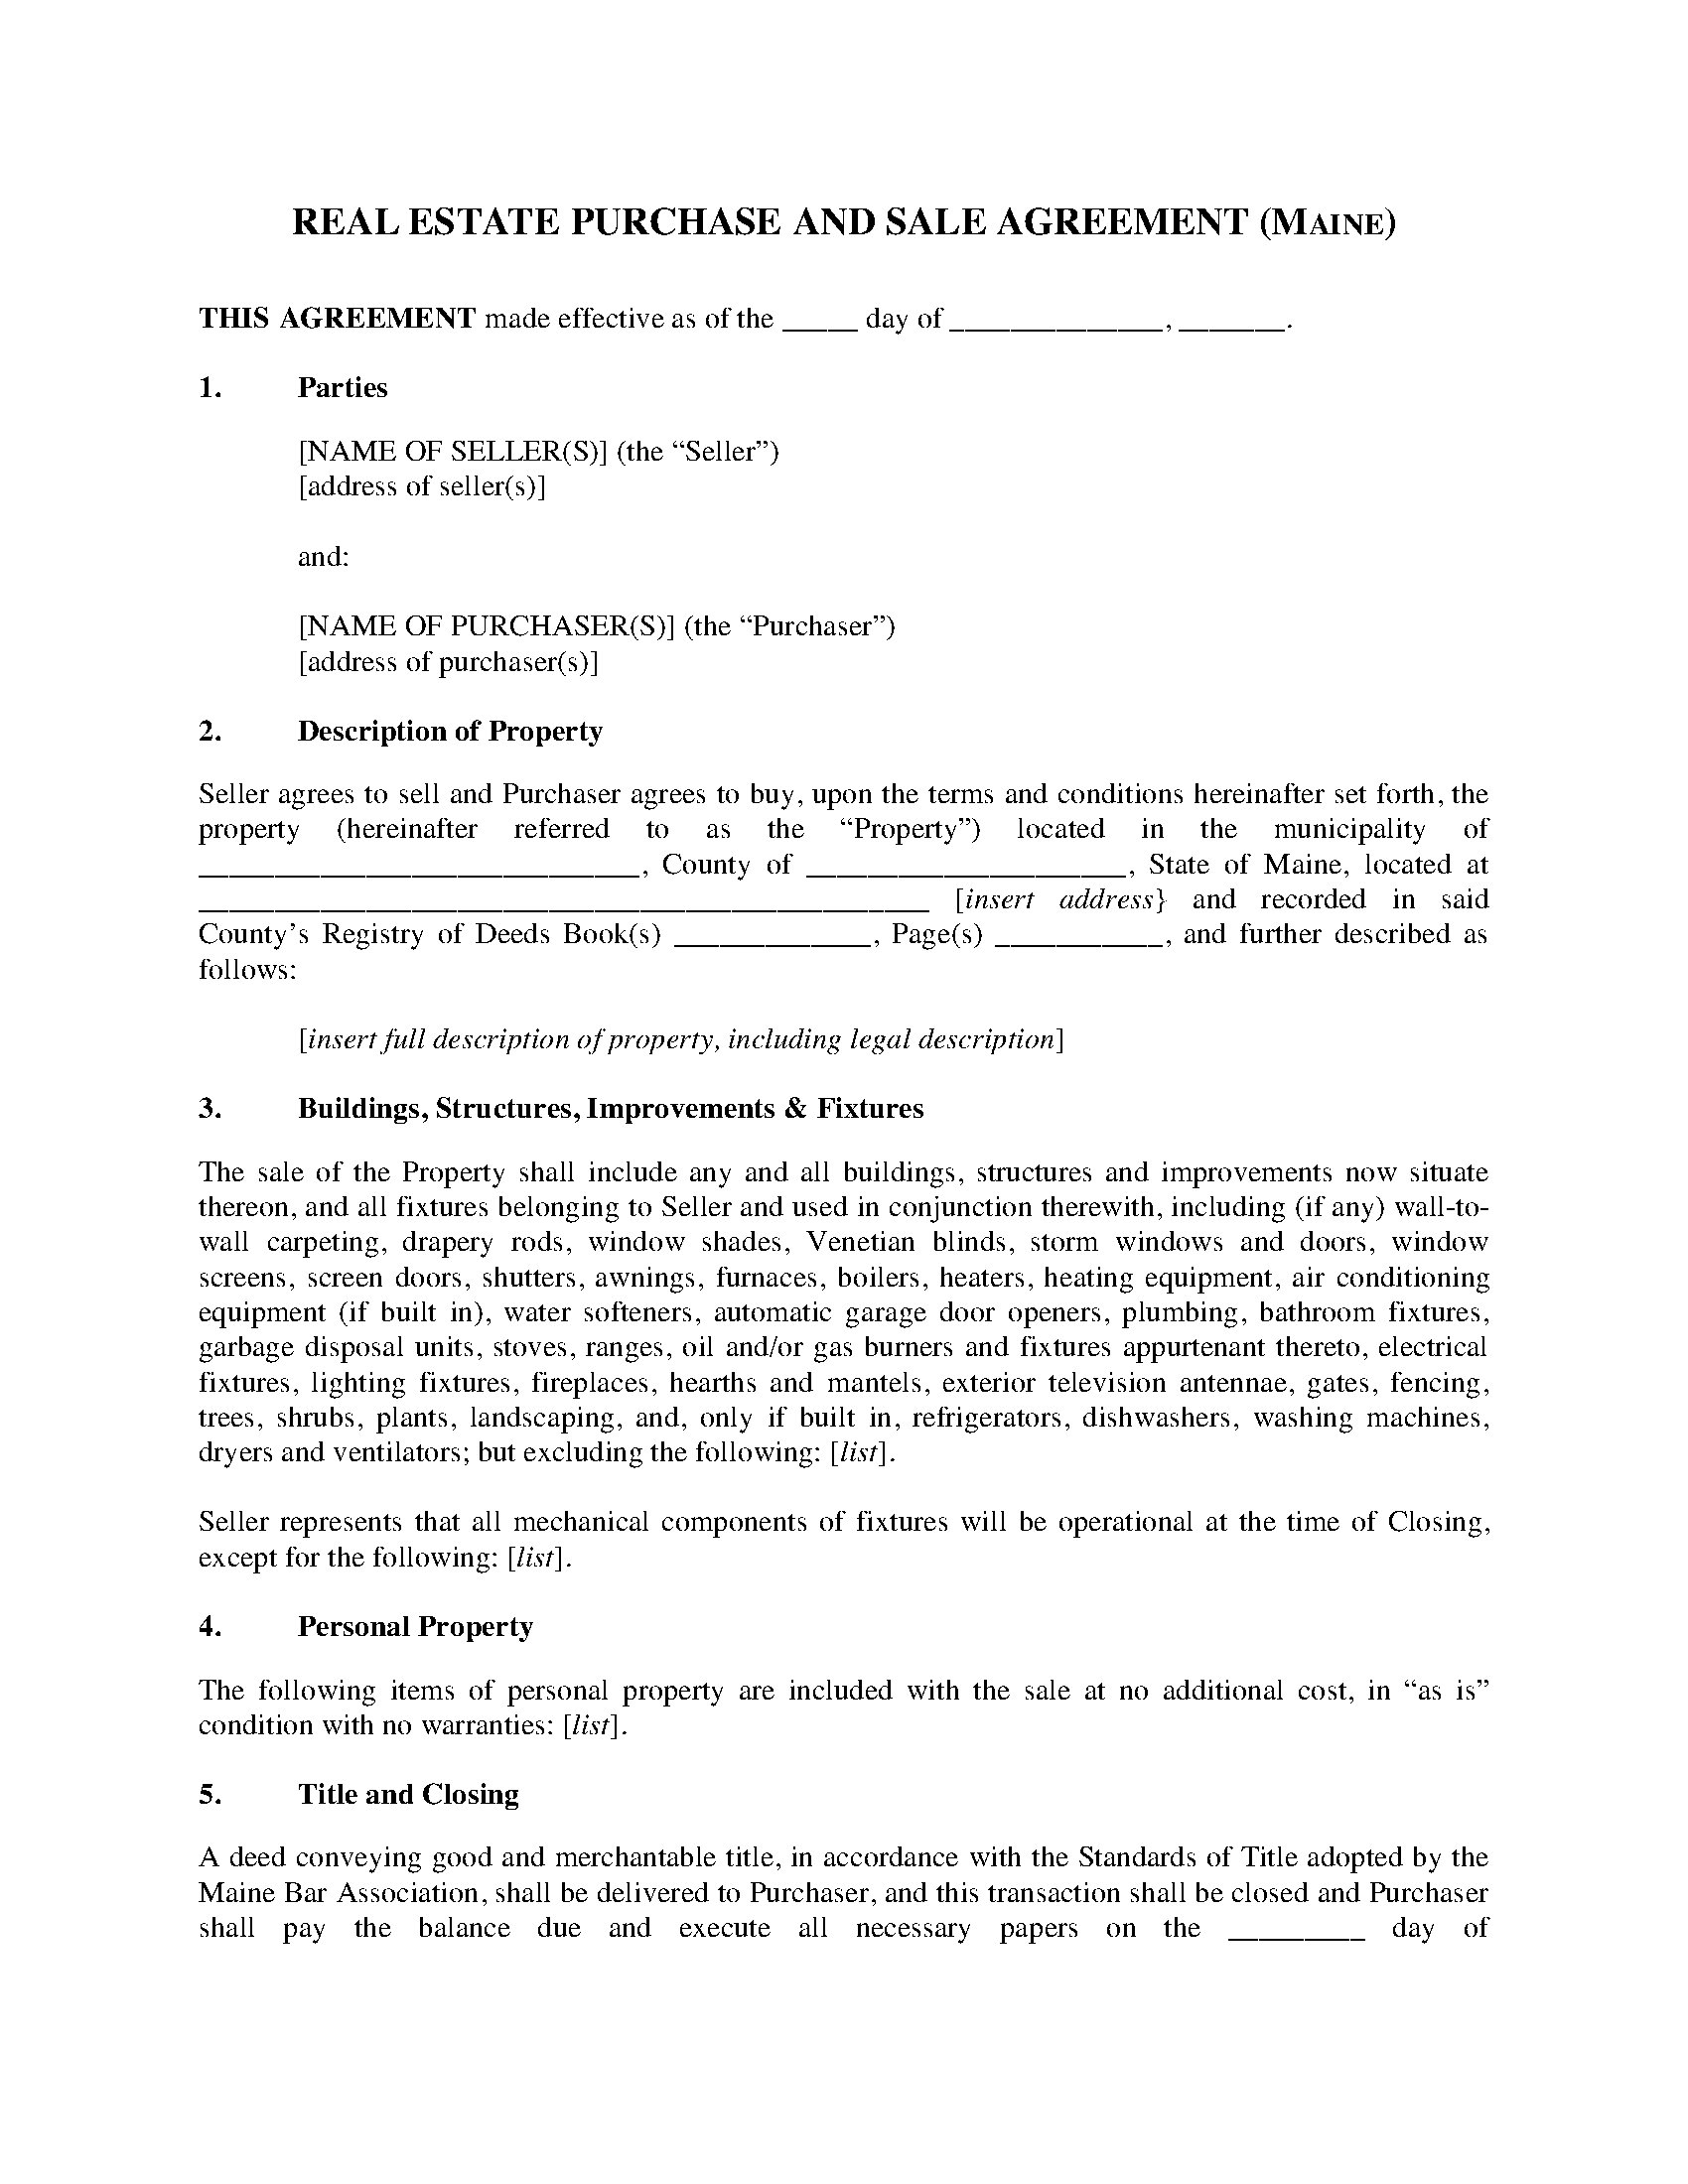 Maine Real Estate Purchase And Sale Agreement Legal Forms And